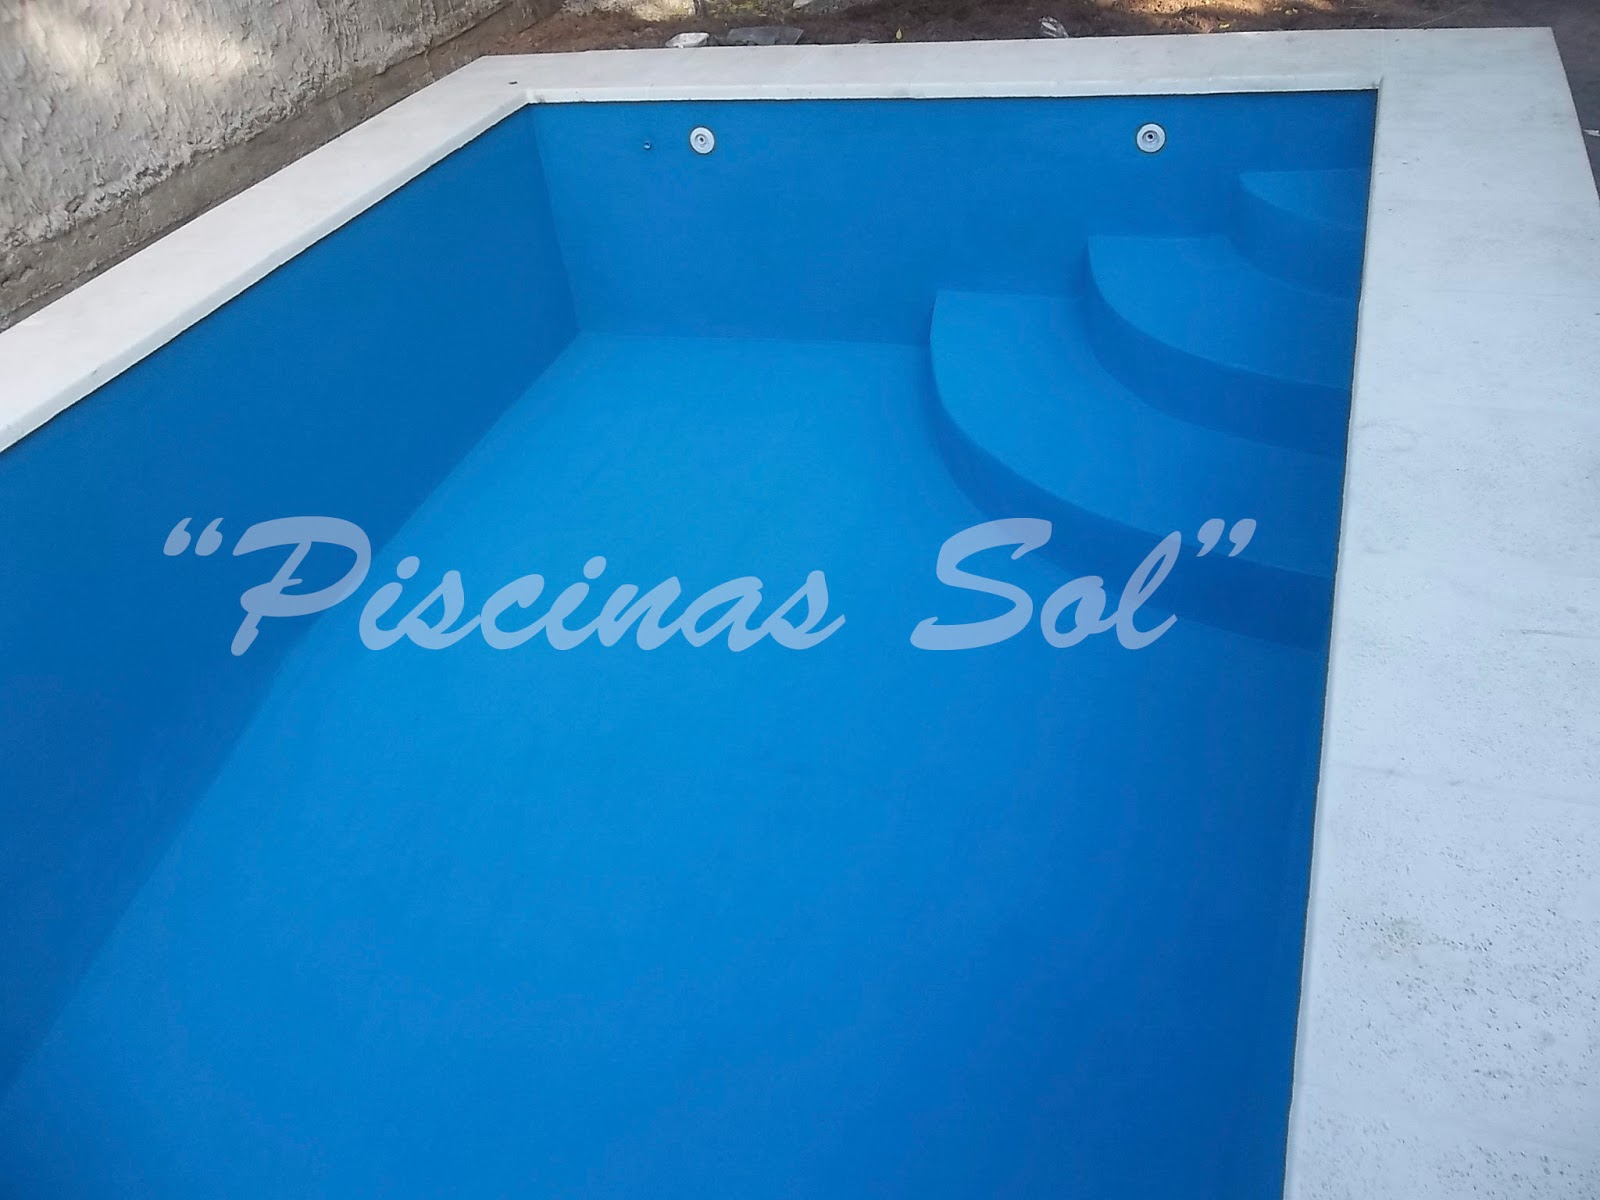 Piscinas sol bs as argentina for Piscina 8x4 profundidad